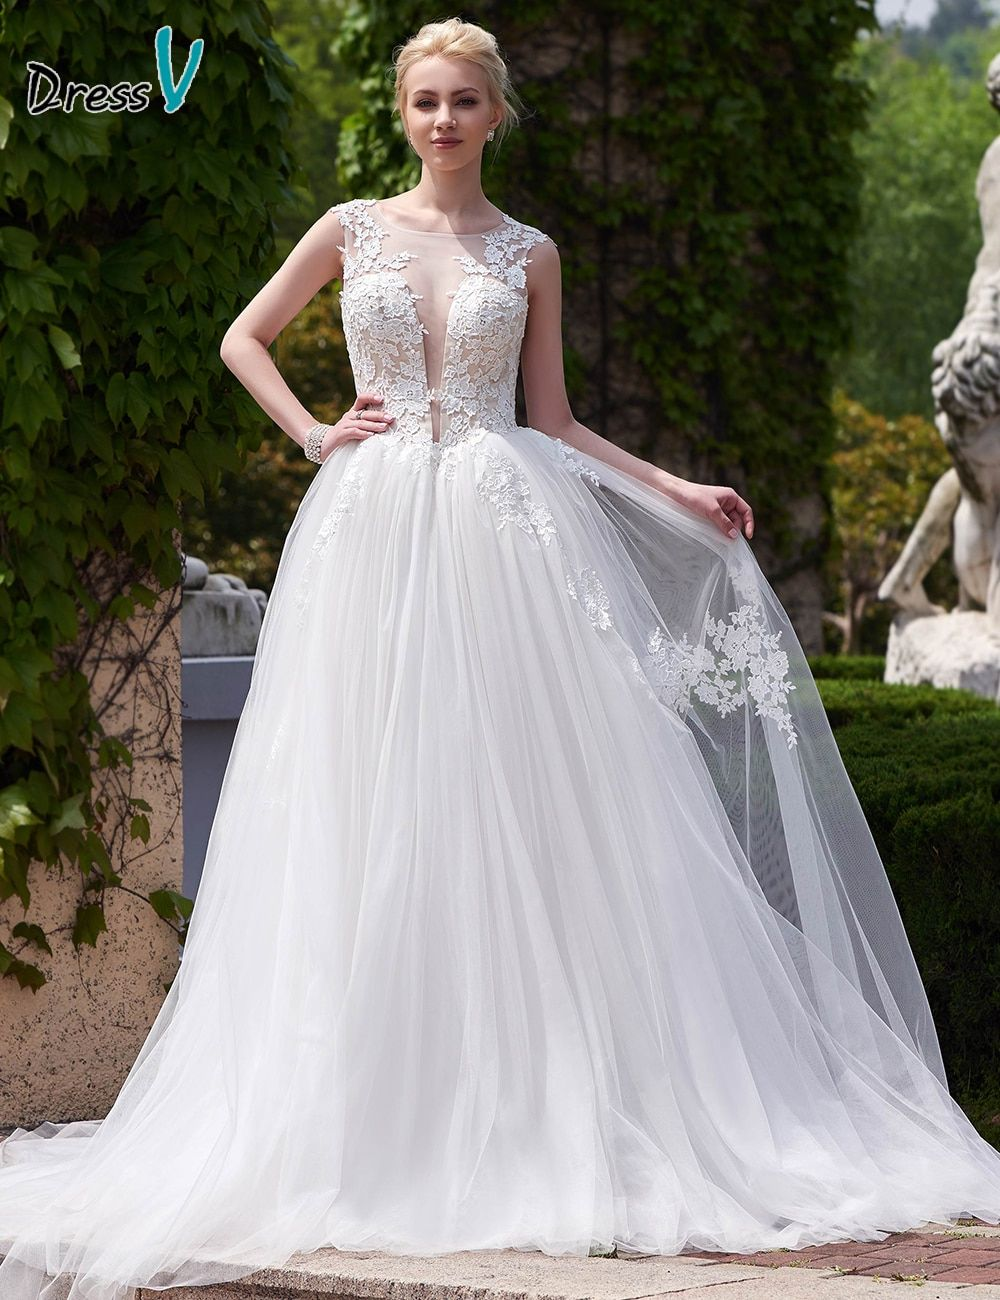 Dressv Open Back Scoop Neck Appliques wedding dress A-Line Court Train white elegant and fashion tulle Wedding Dress